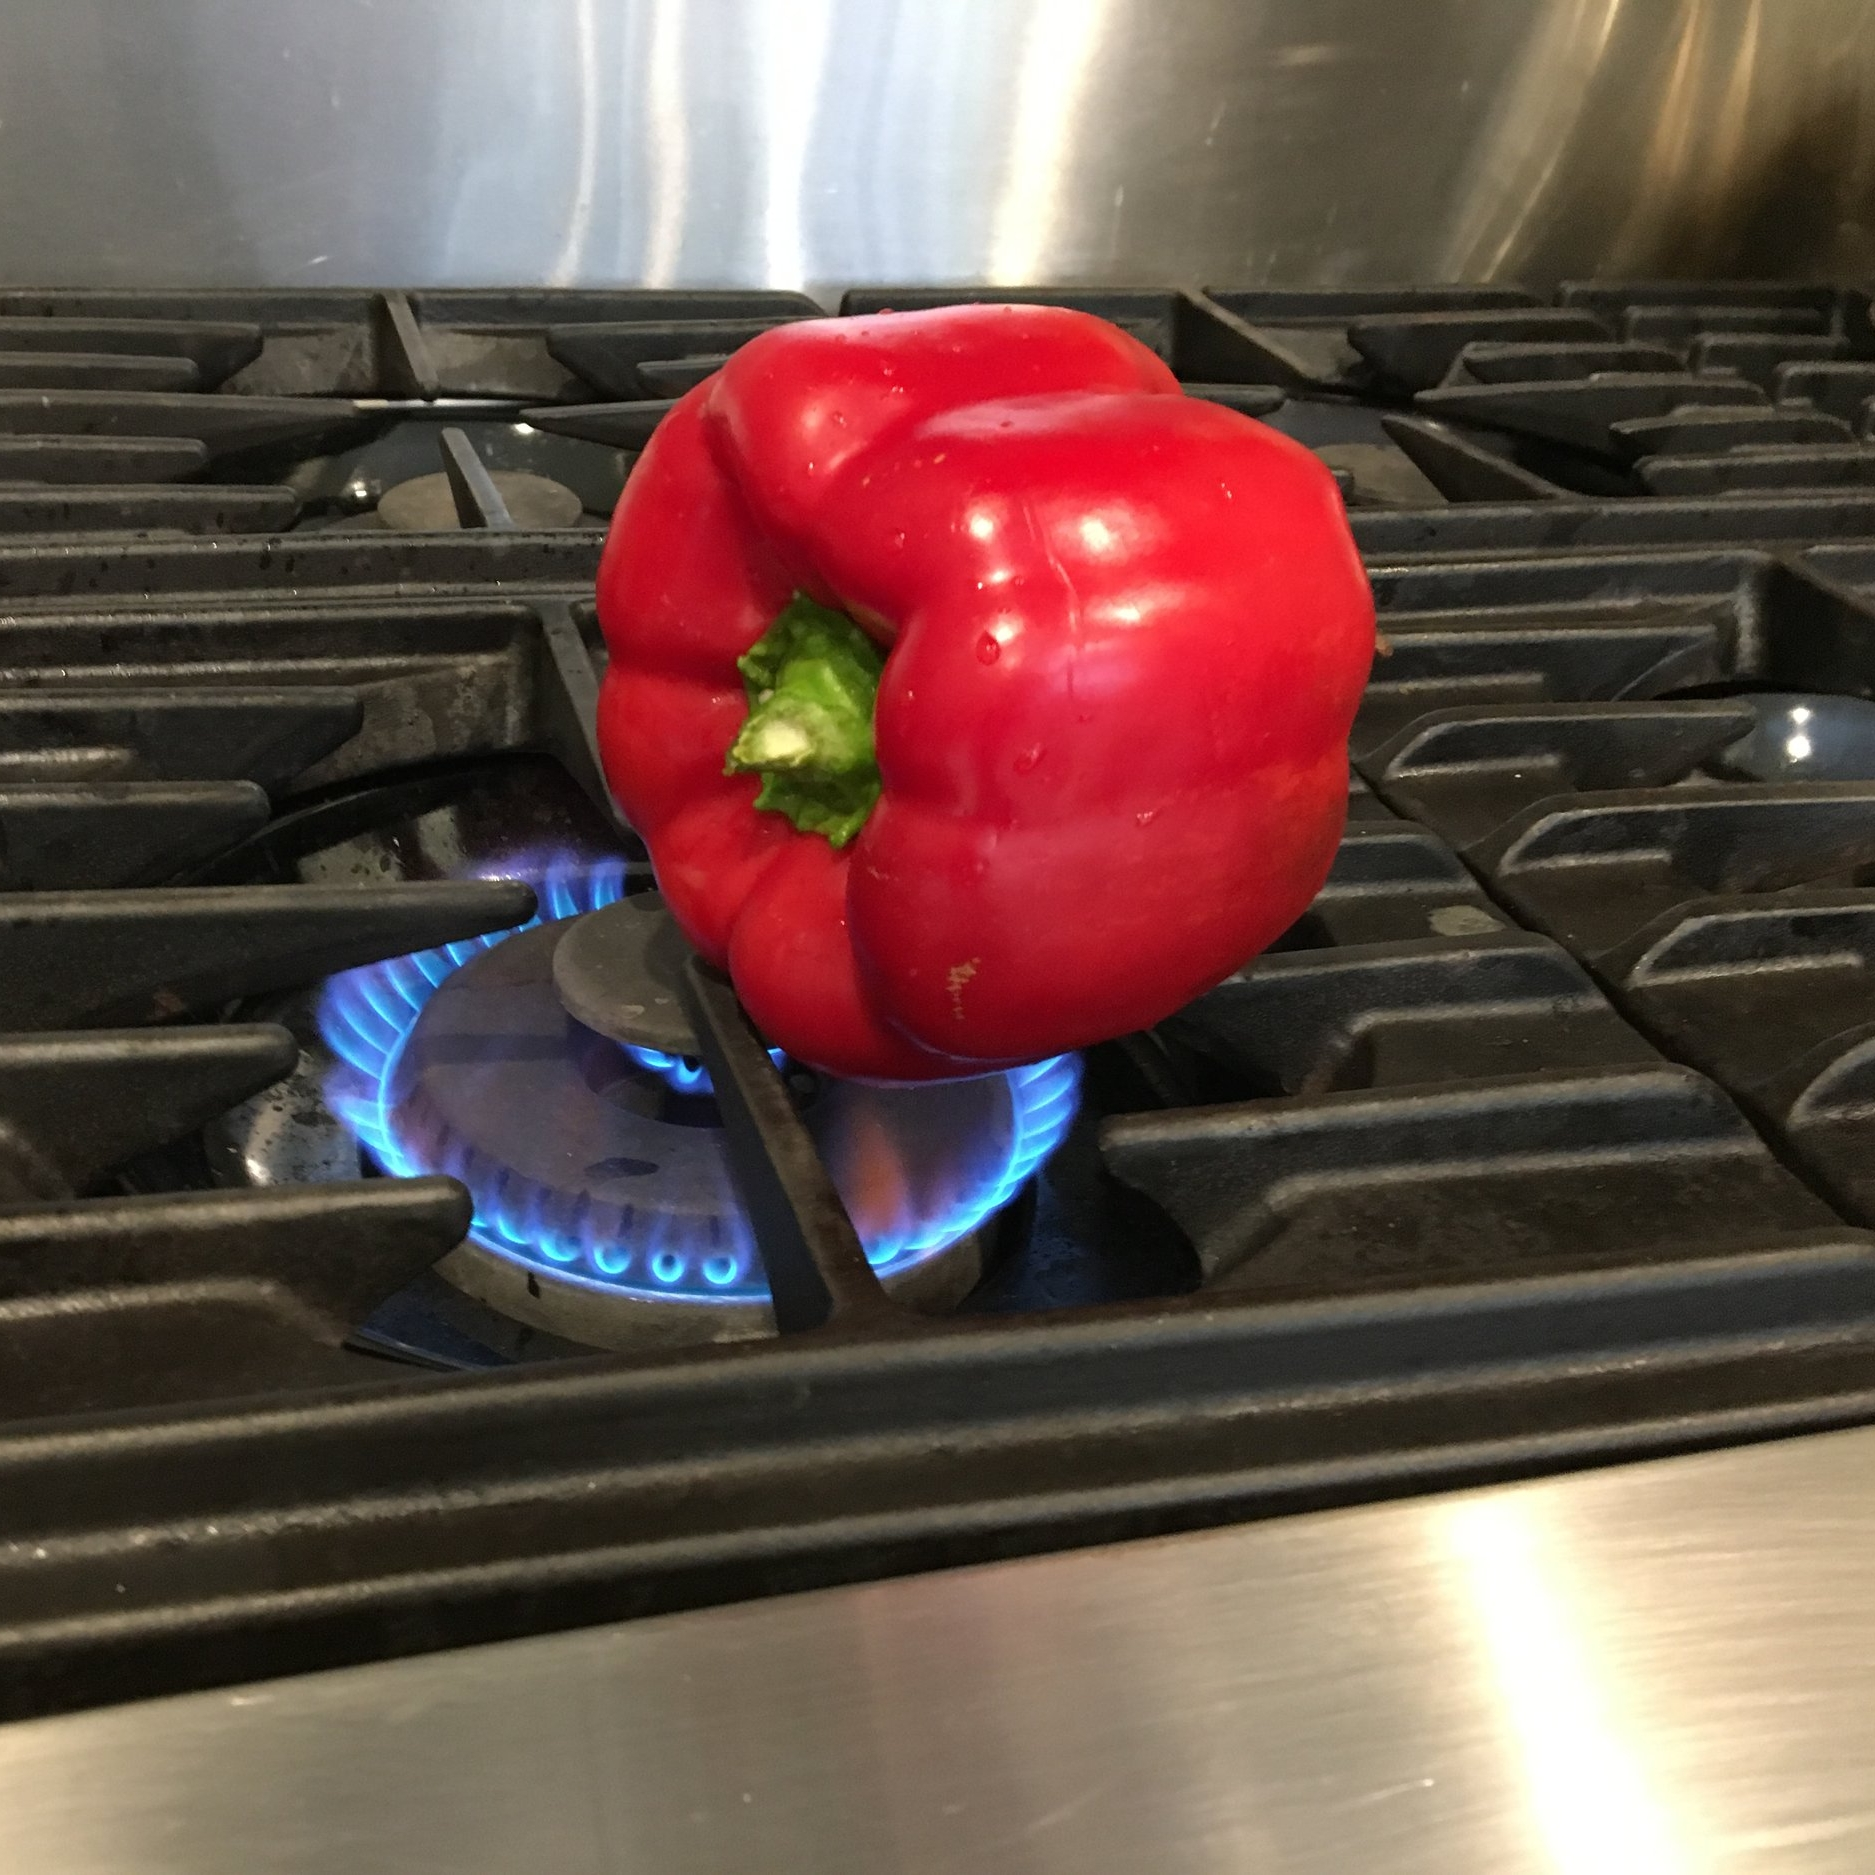 Stove: Place the pepper right on the flame. If it will rest on its own without falling over, leave it there. If it topples, you can hold it with tongs. You don't need to do anything to your pepper first, except wash it.  Oven & Grill: If you are roasting in the oven or on a grill, preheat to 400 degrees. I recommend giving your pepper a light coating of oil and sprinkle of salt. If you are roasting a solid item, like an eggplant or squash, poke some holes in it first. For hollow items like peppers, no poking is needed.